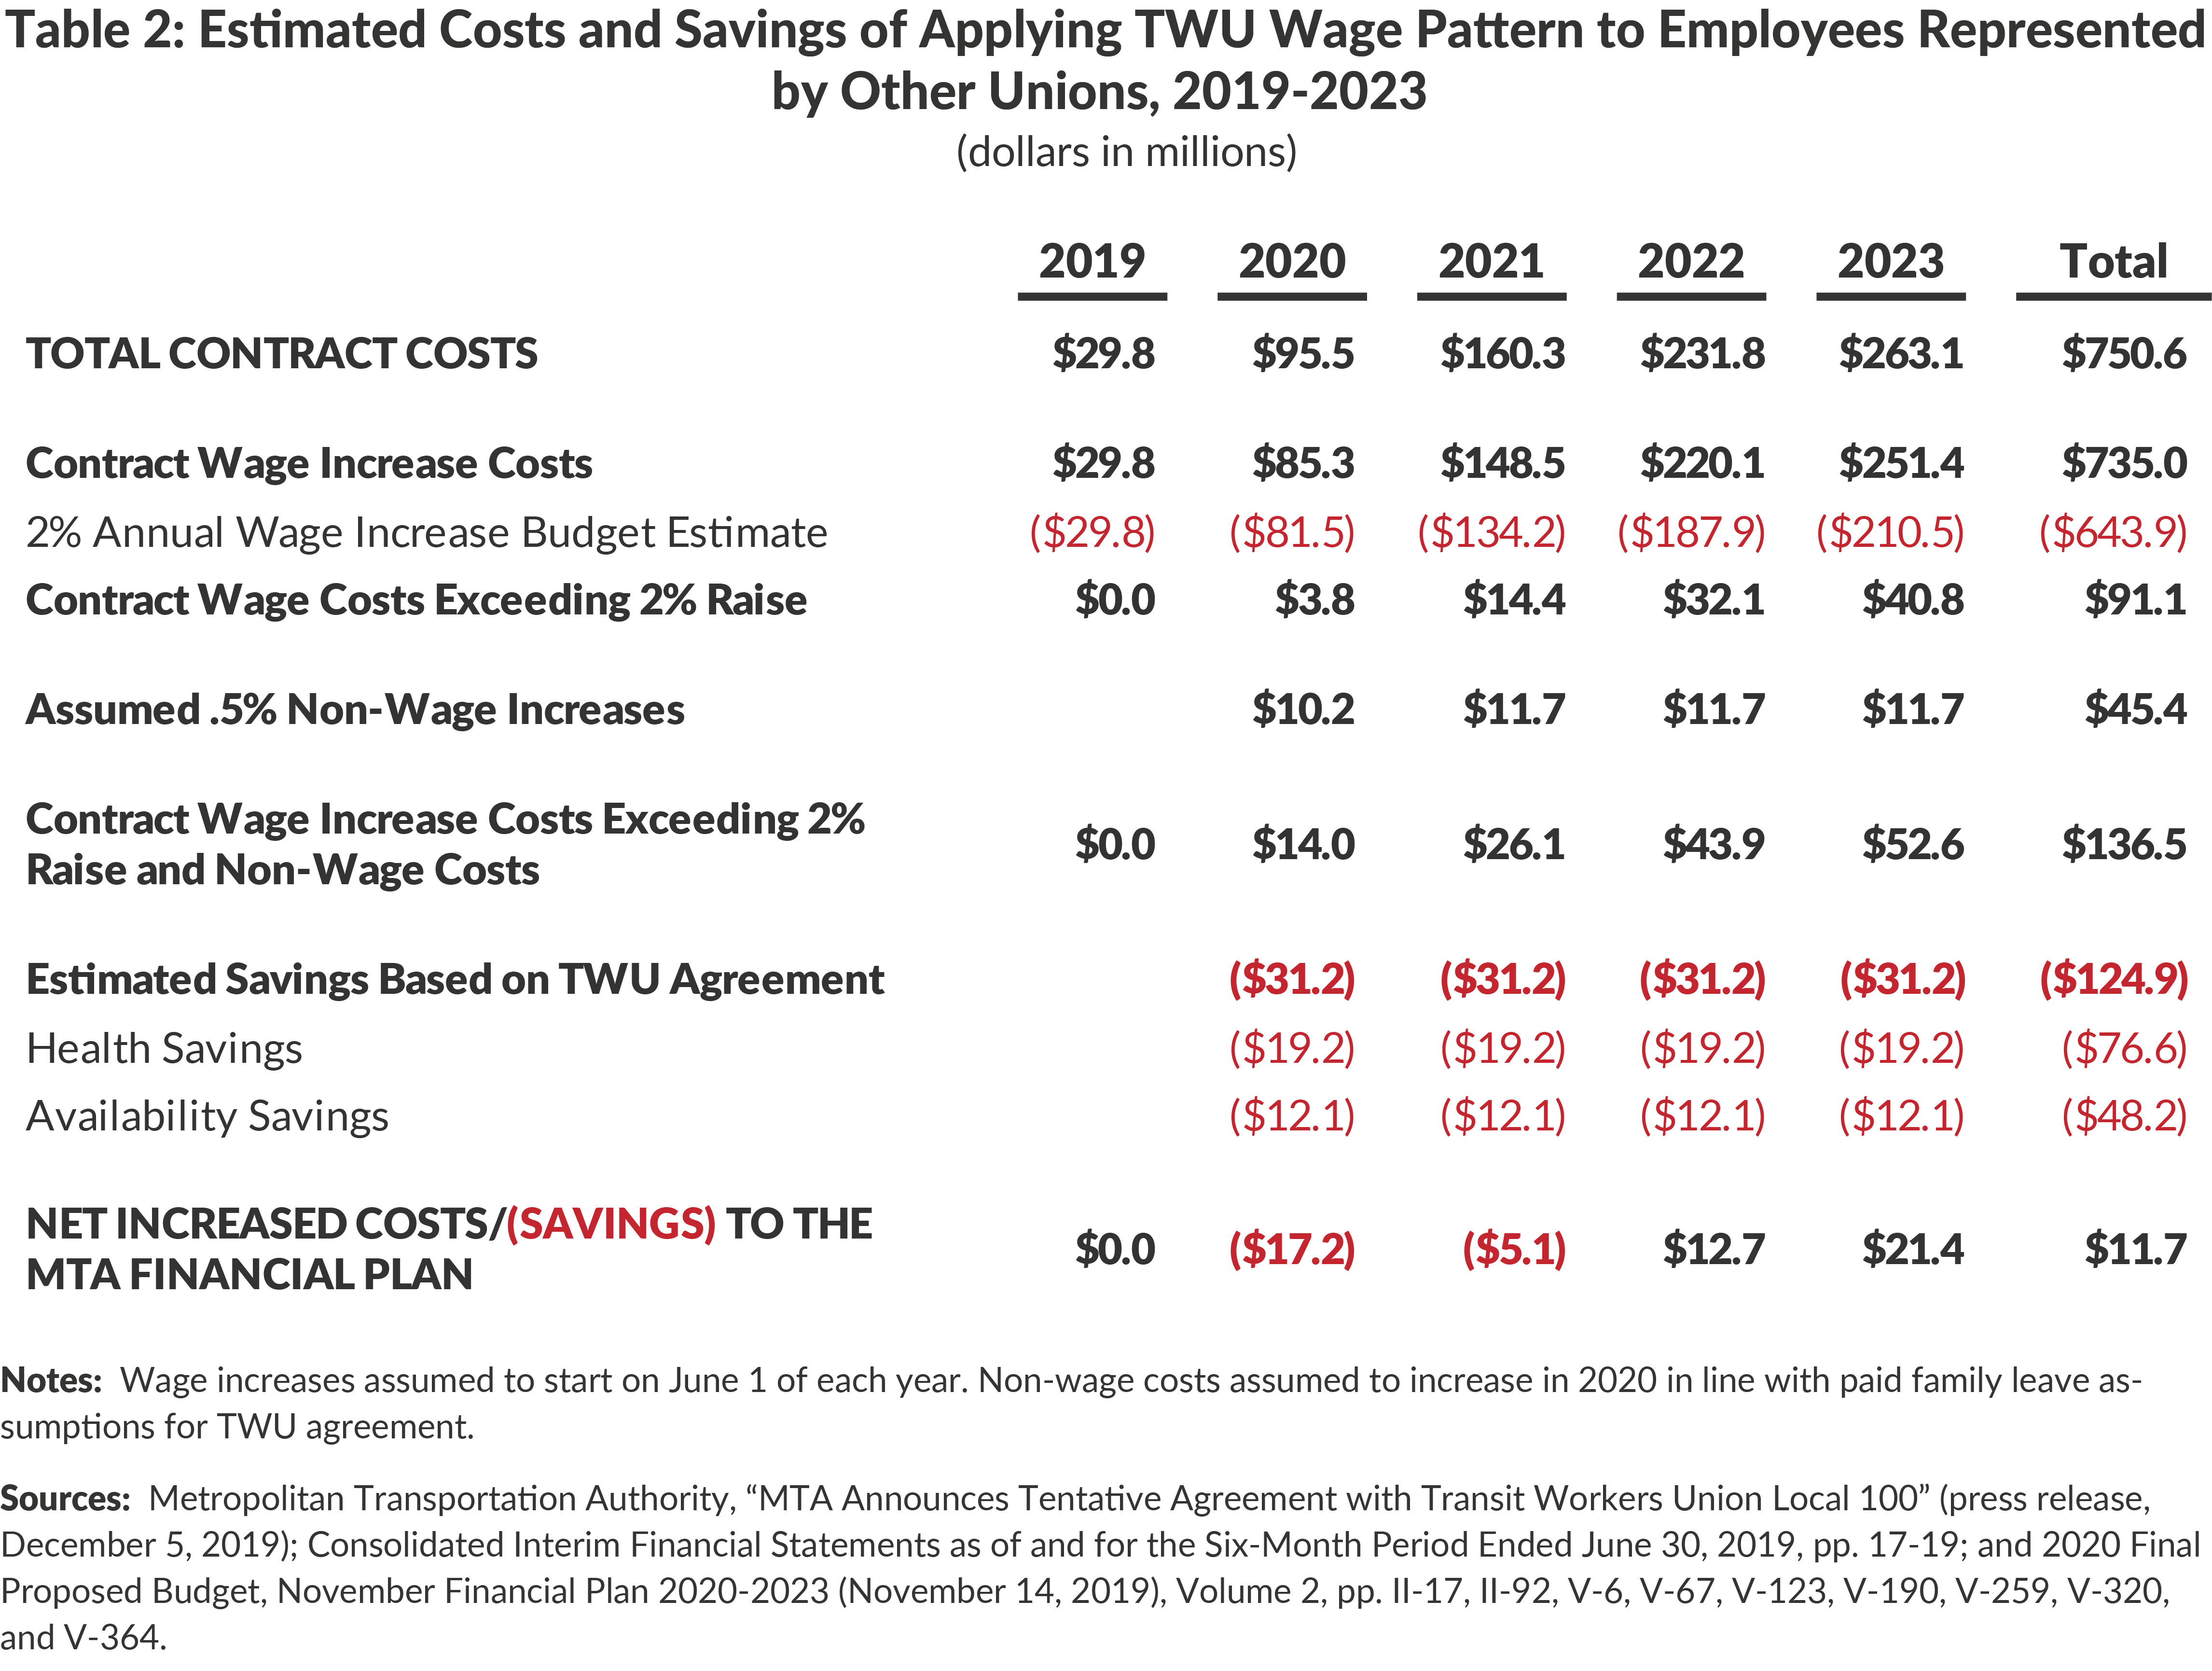 Table 2: Estimated Costs and Savings of Applying TWU Wage Pattern to Employees Representedby Other Unions, 2019-2023